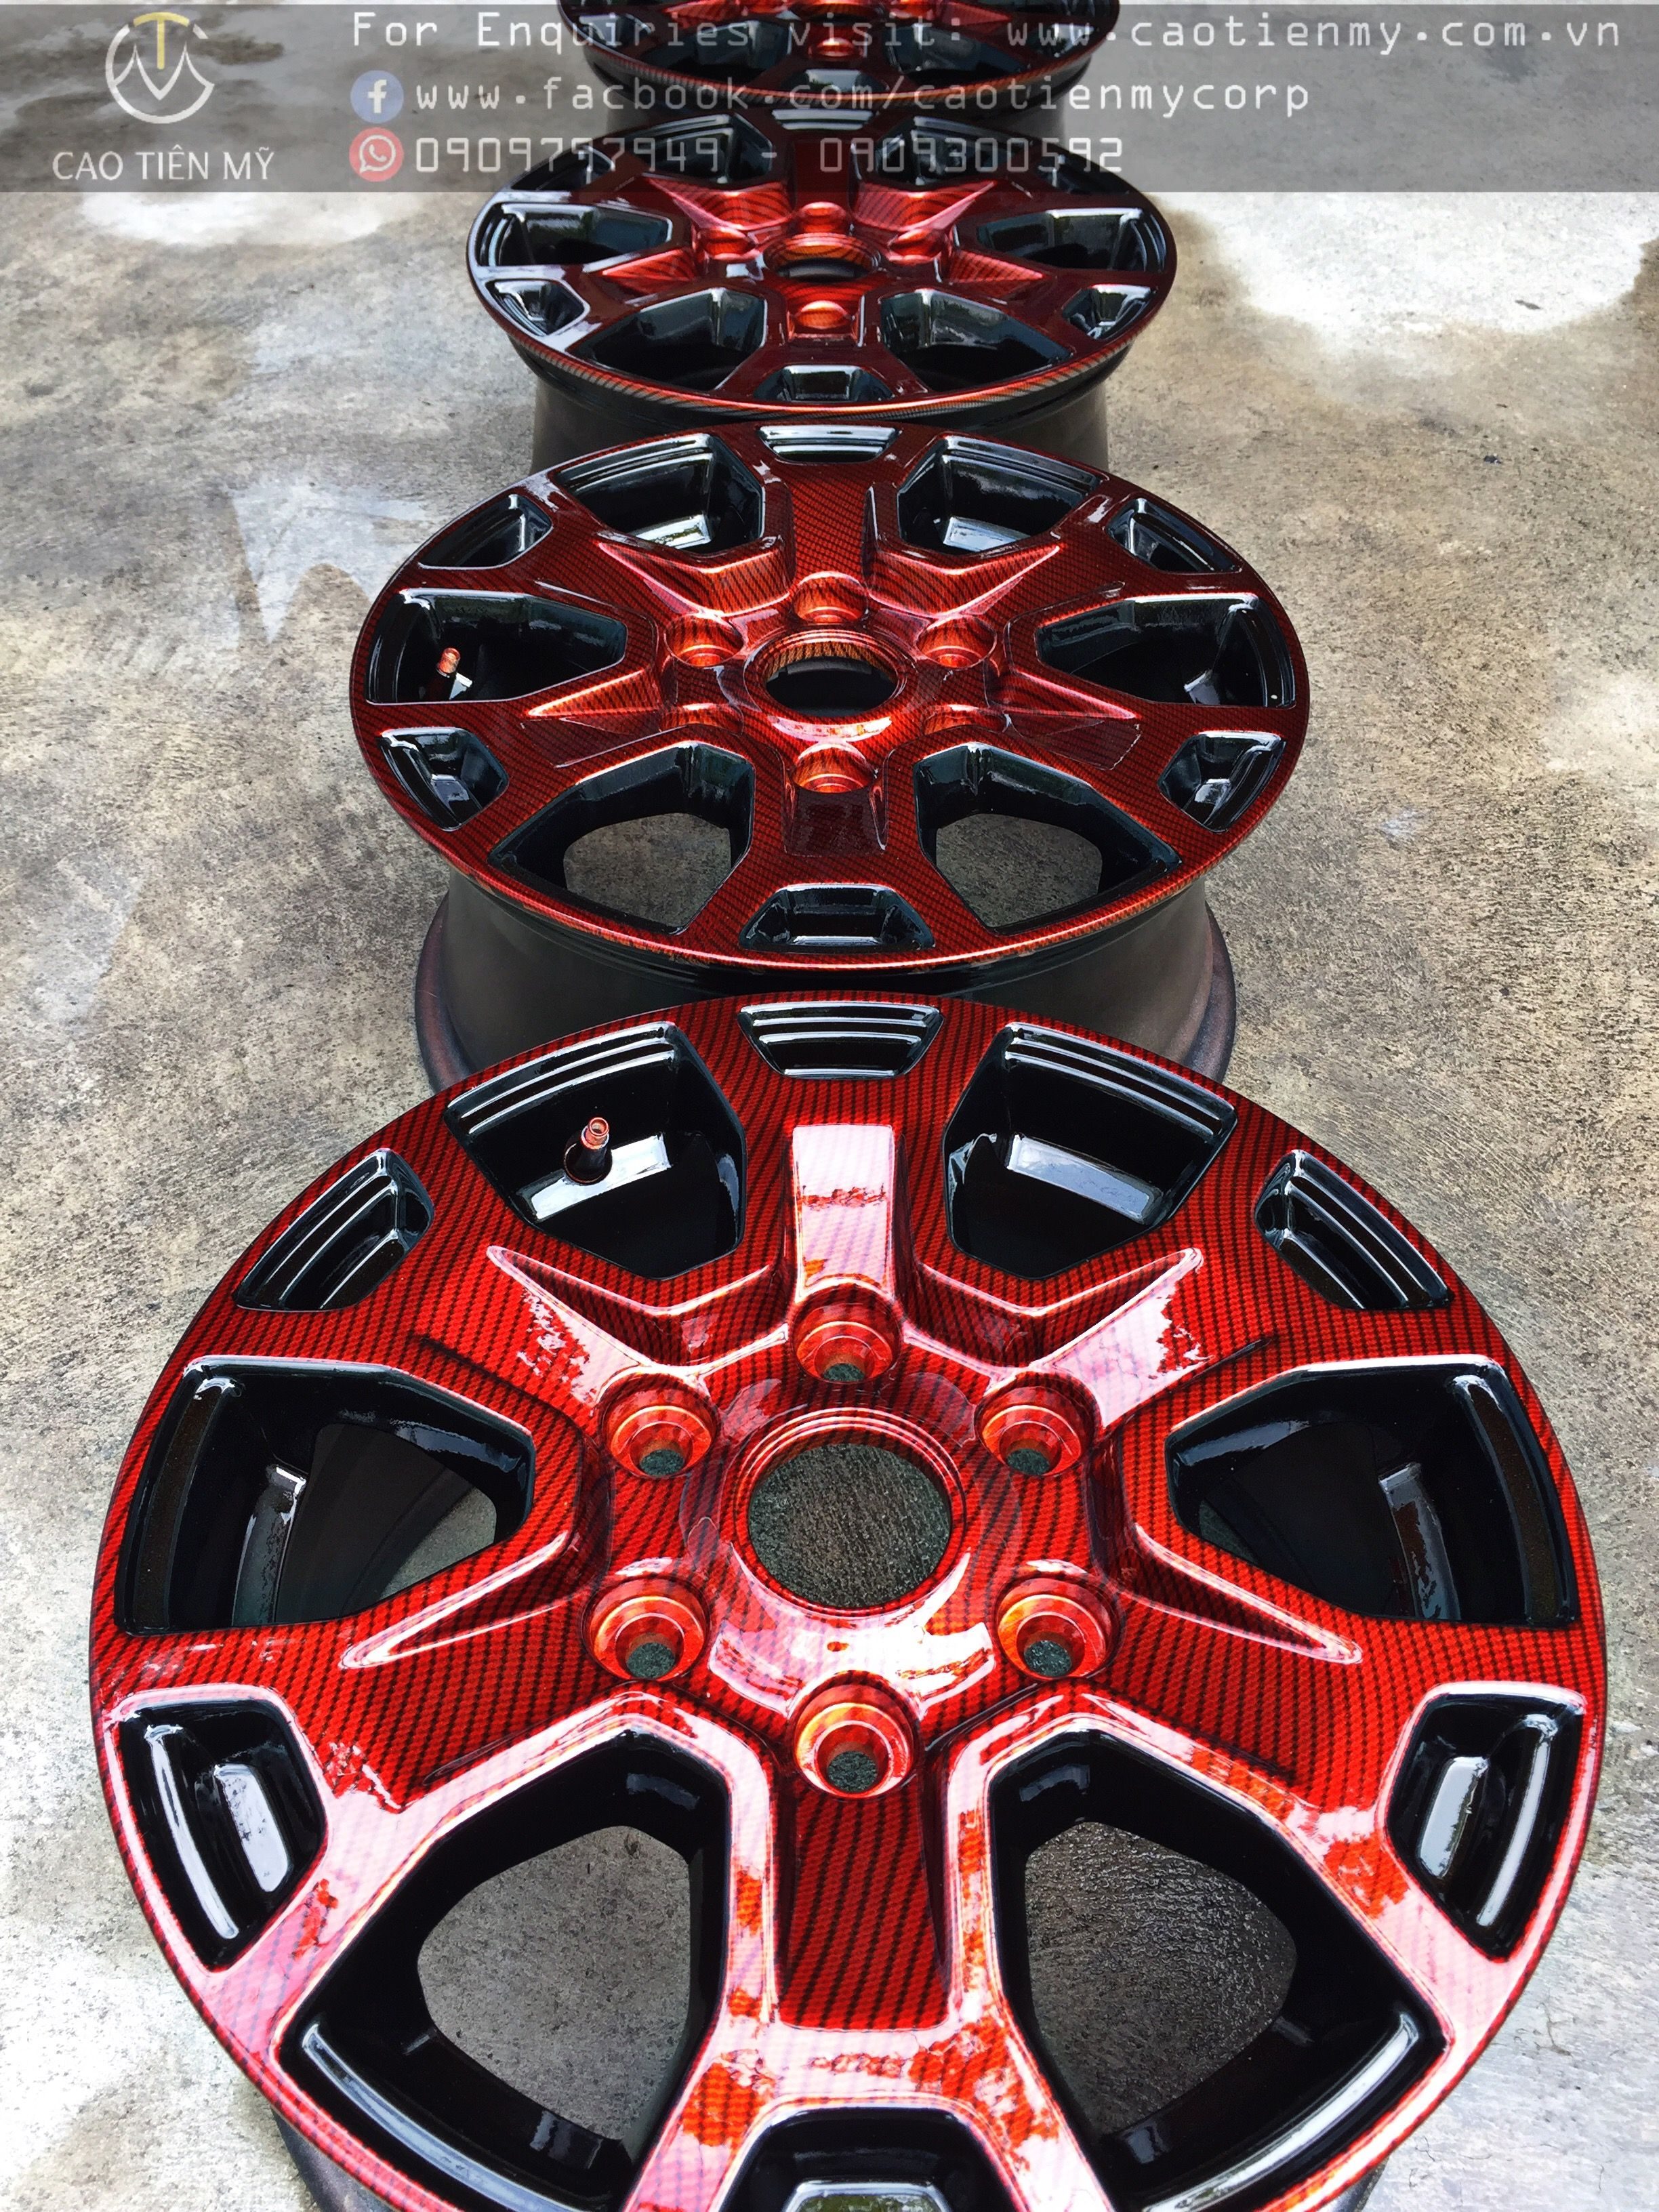 Hydro Dipping Wheel Rim Ford Ranger Hydro Dipping Car Exterior